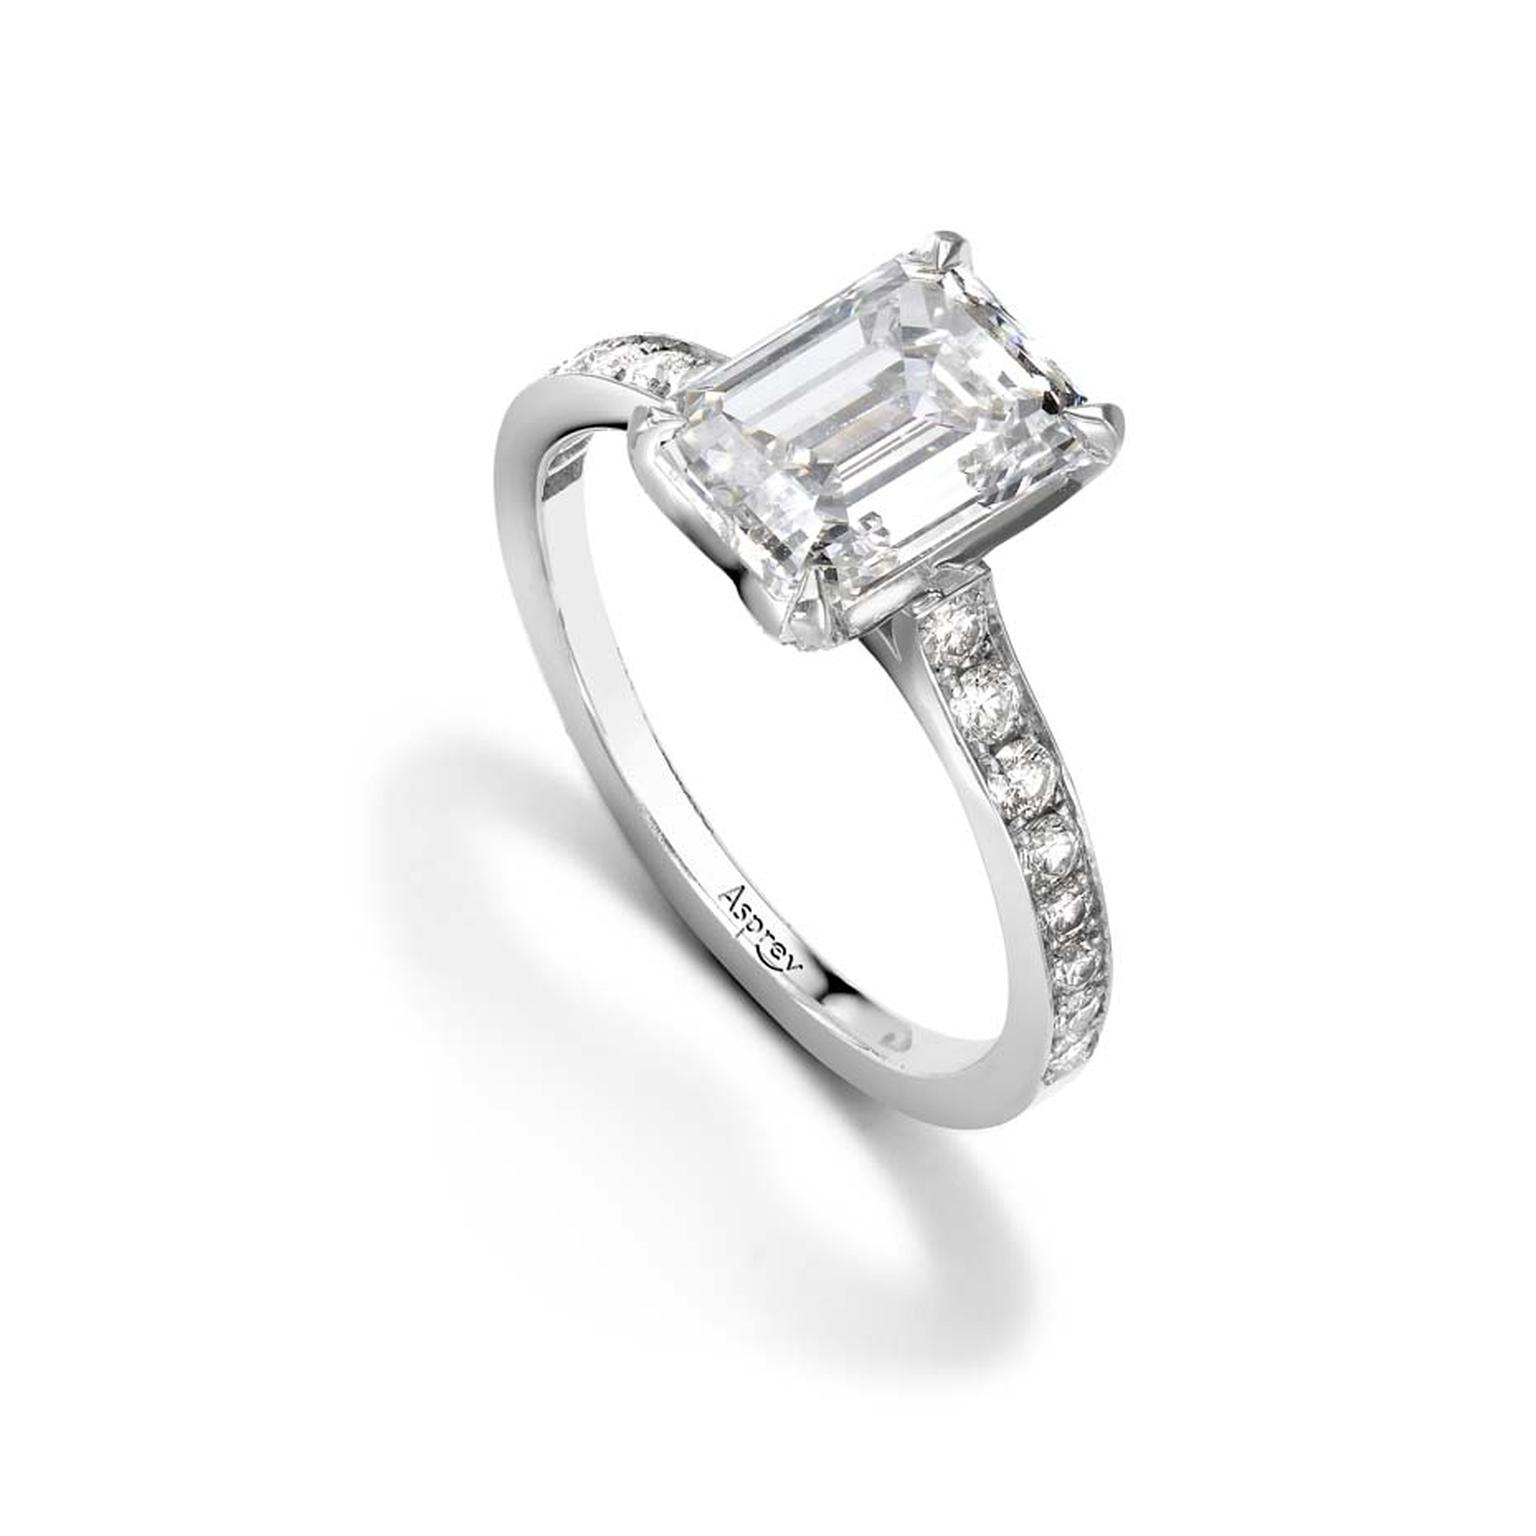 Asprey emerald-cut diamond engagement ring set with round brilliant diamonds on a platinum band.